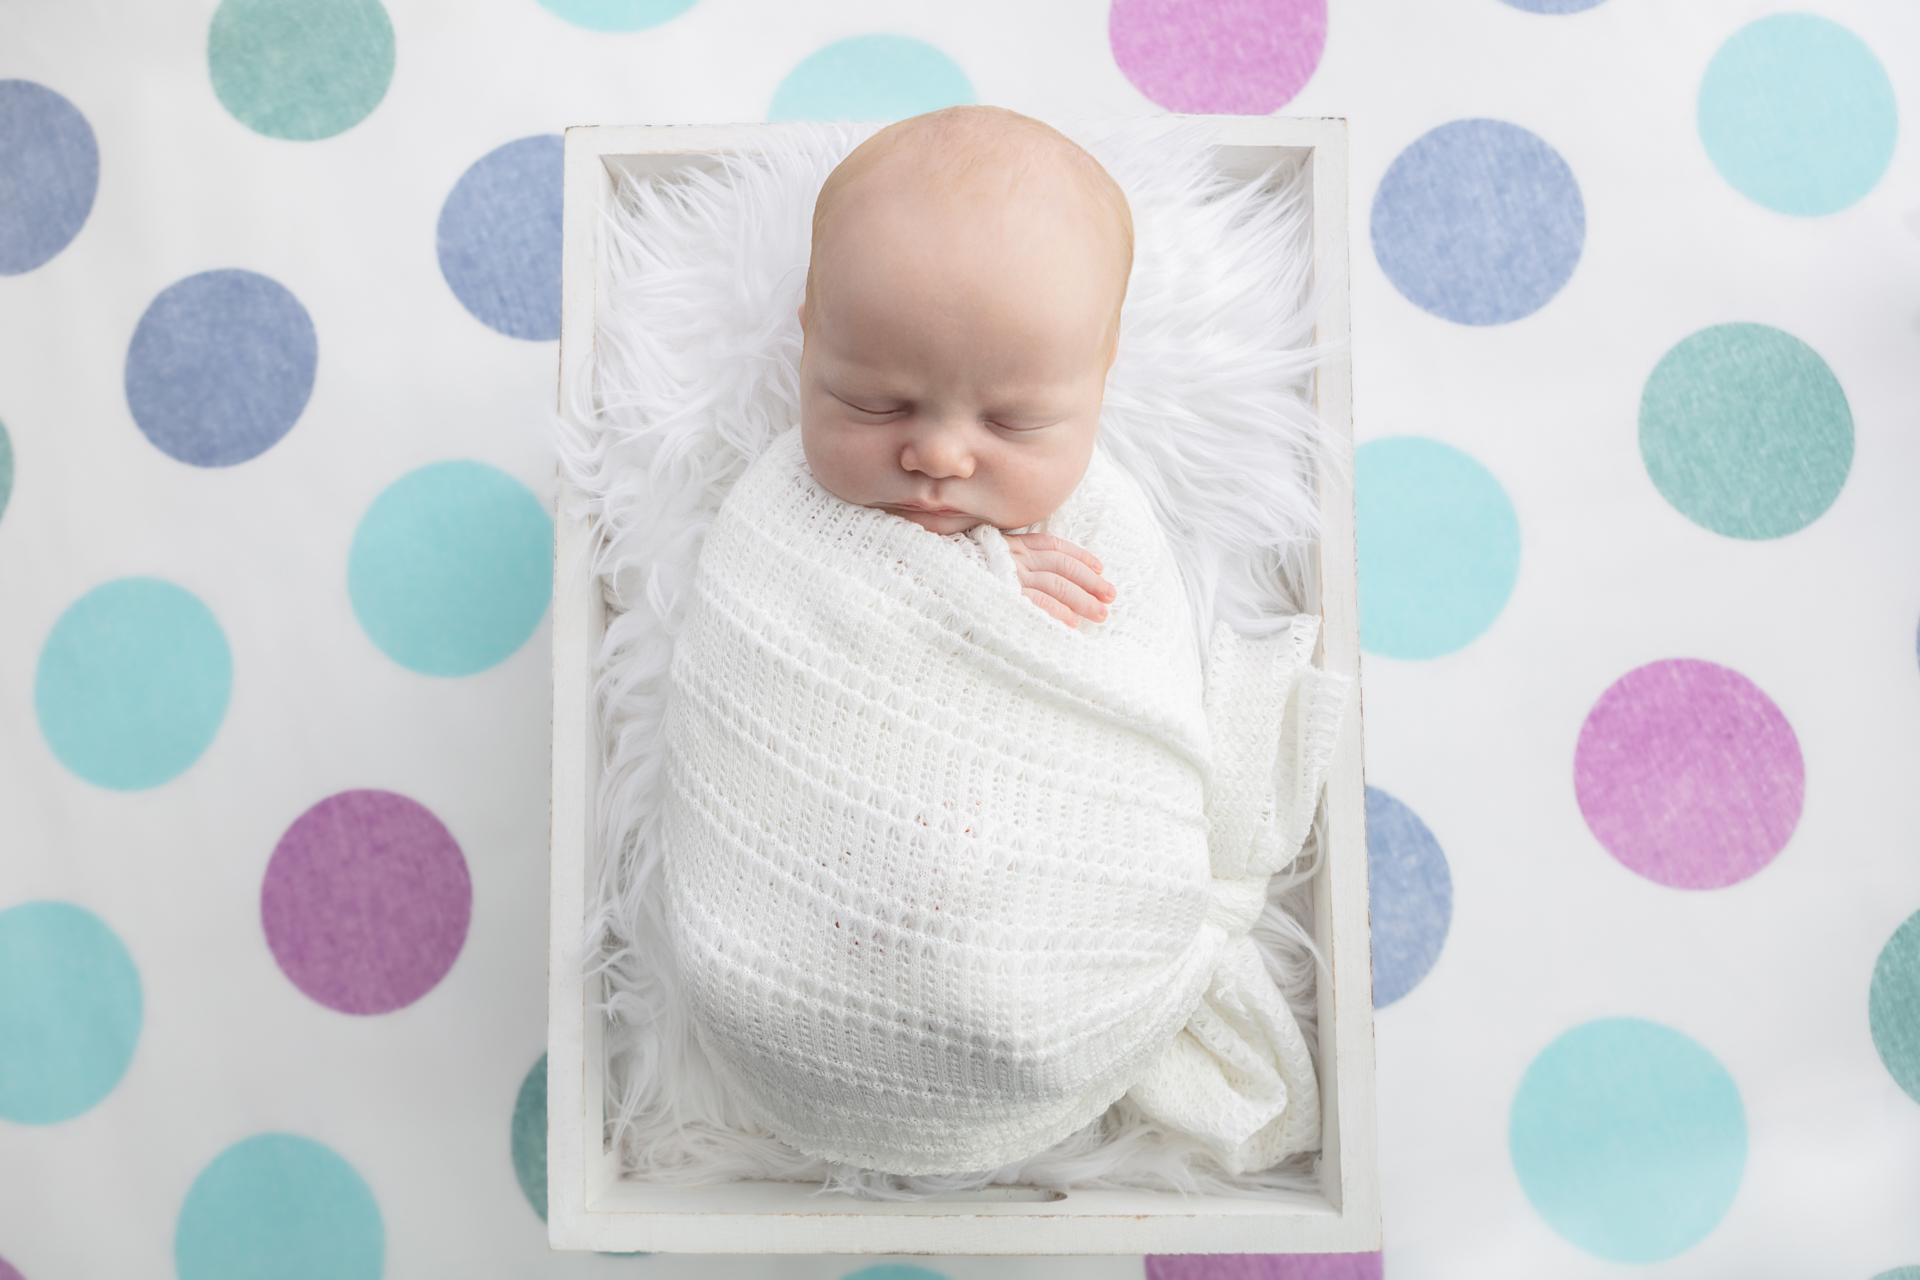 blue, aqua, soft green, and soft purple polka dot background; newborn baby wrapped in an open knit white swaddle